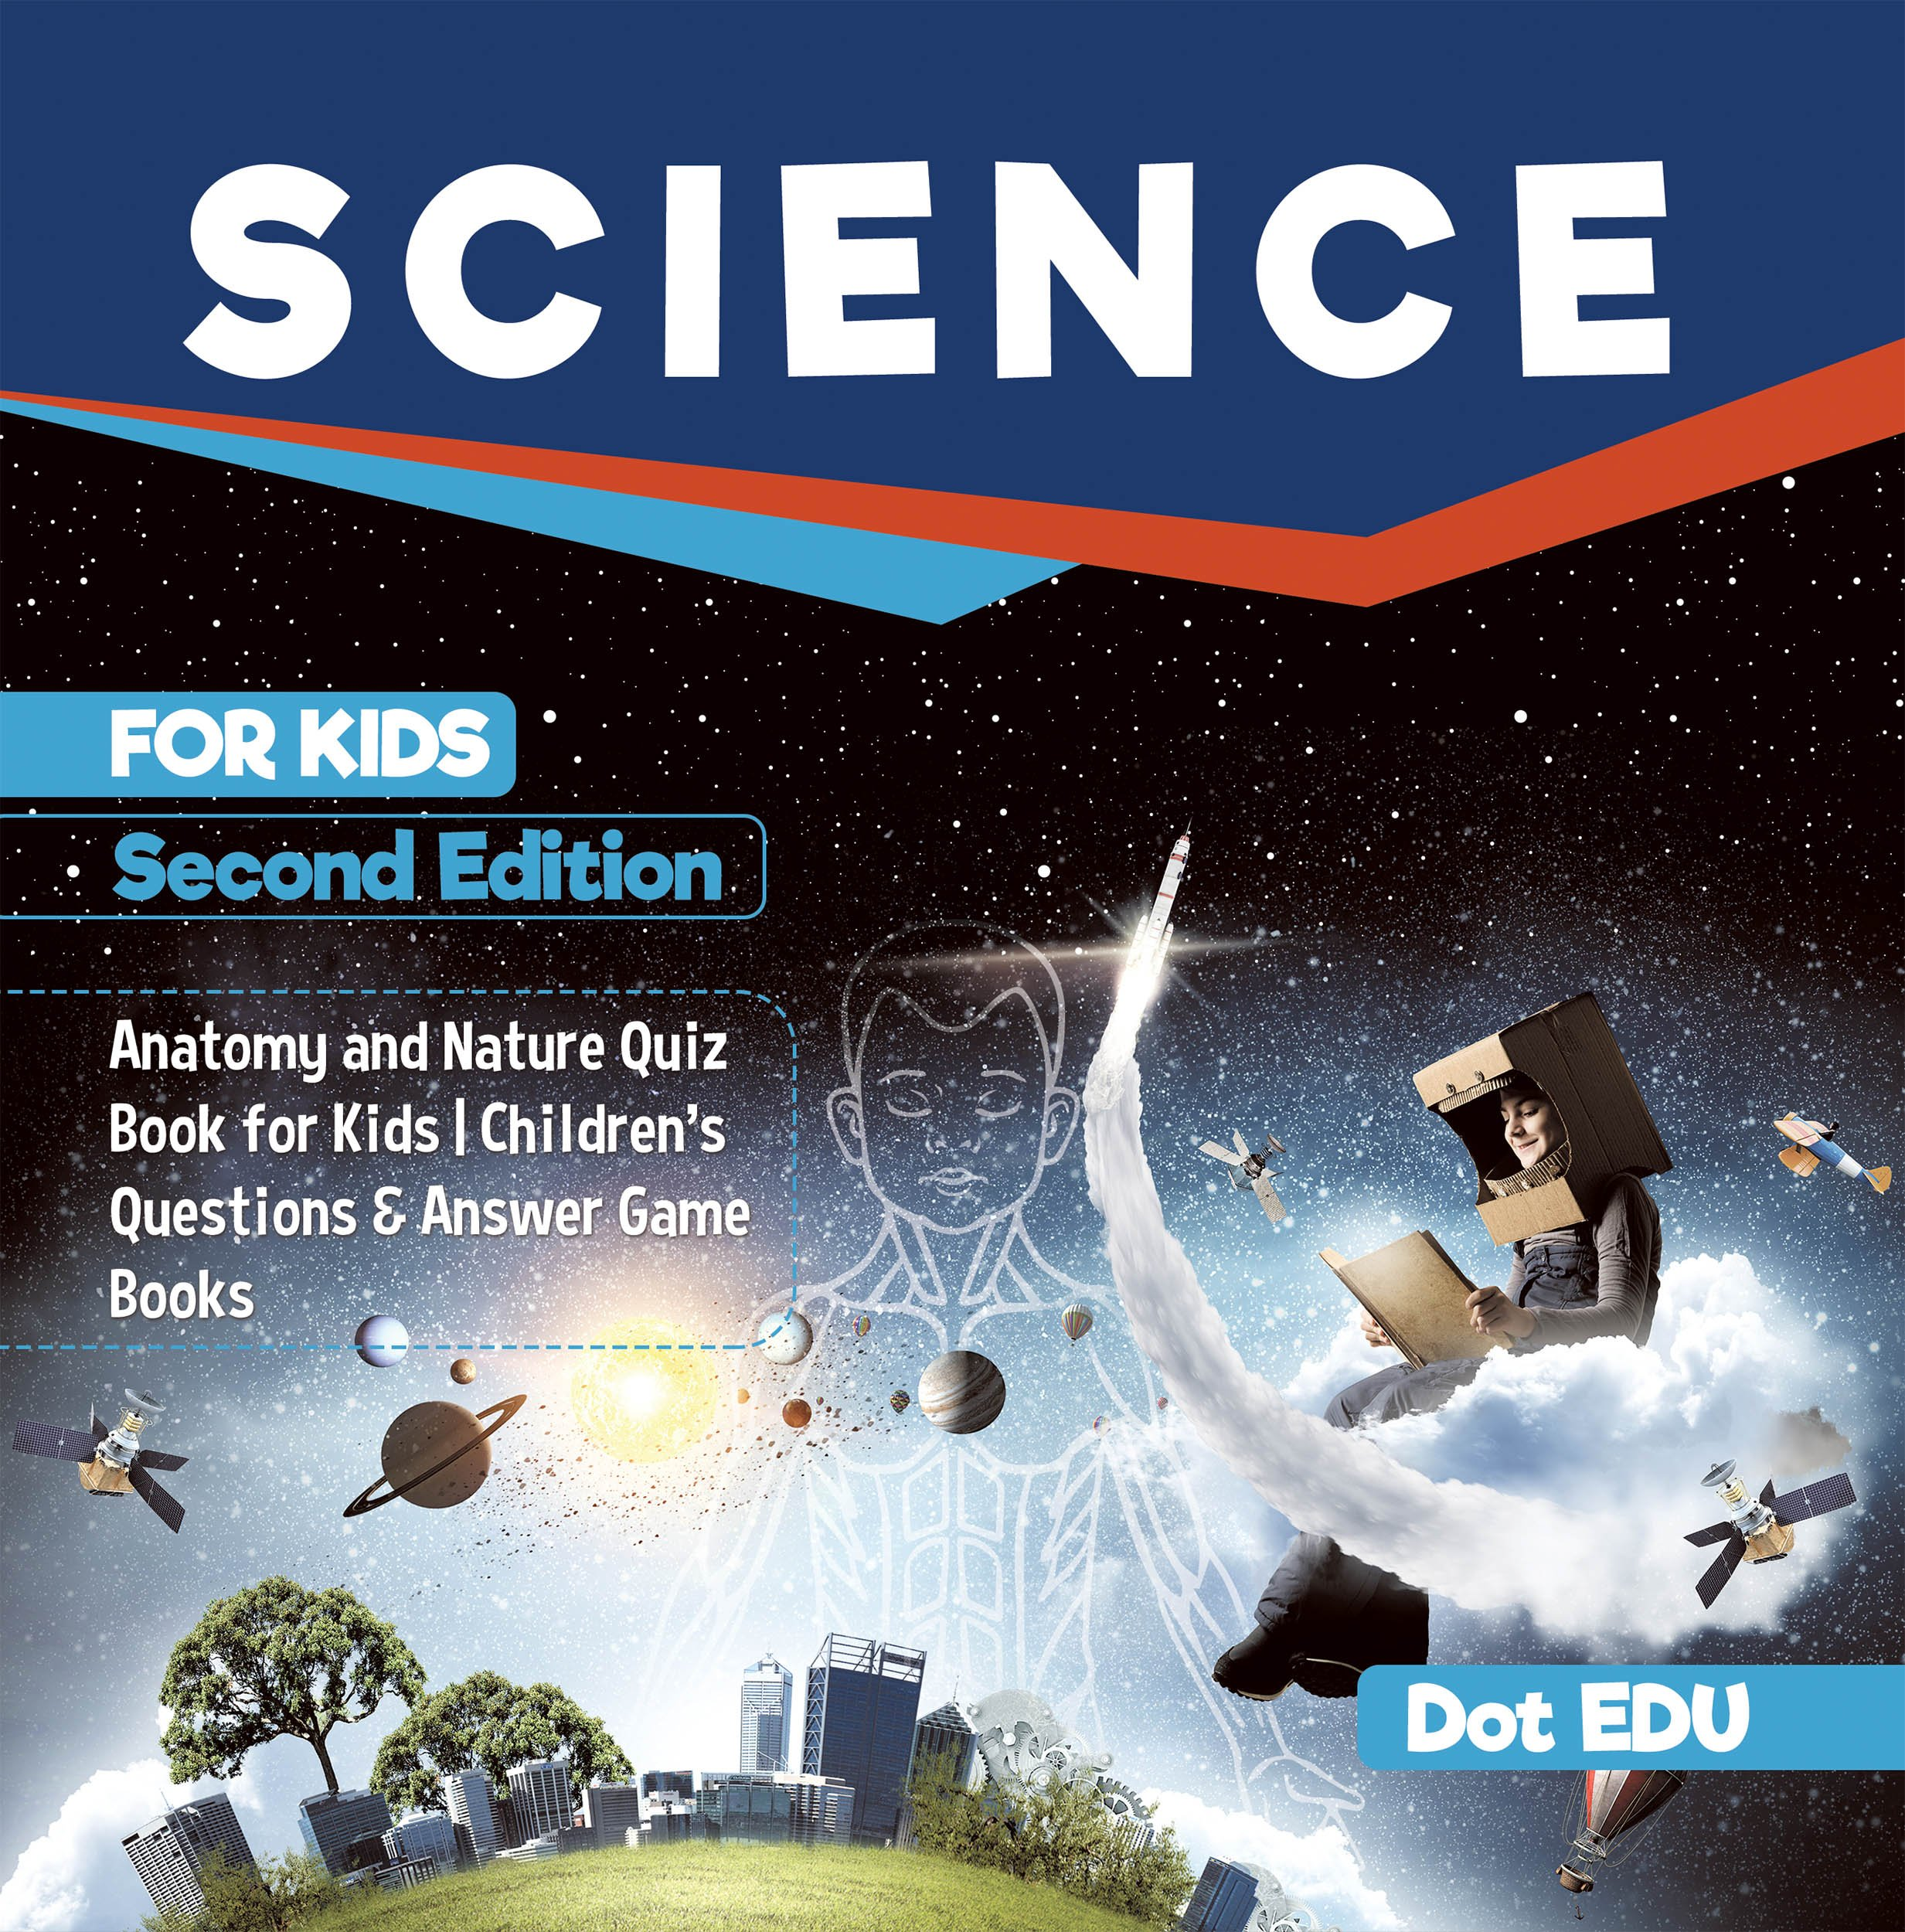 Science for Kids Second Edition | Anatomy and Nature Quiz Book for Kids | Children's Questions & Answer Game Books (English Edition)